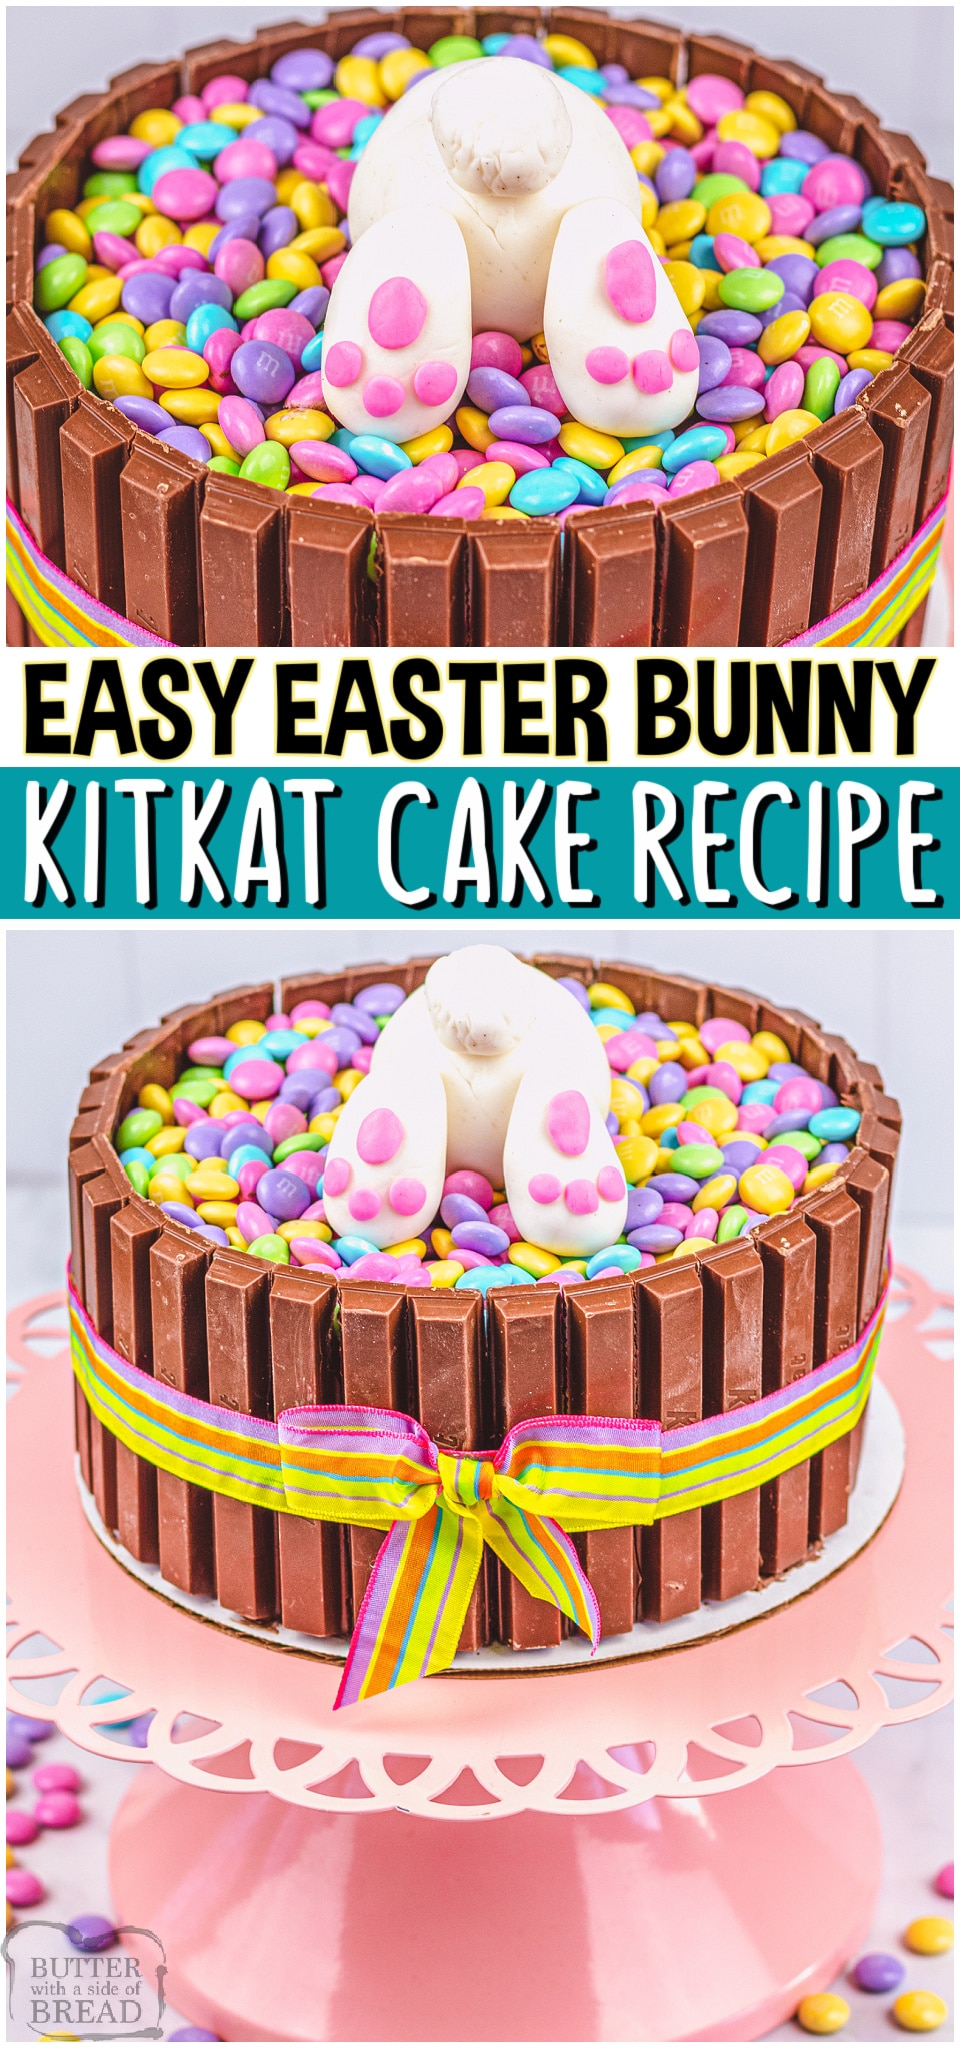 Easter Bunny KitKat Cake made easy & no one can resist this darling Easter cake! KitKats line the outside of the cake and the top has a cute Easter Bunny peeking out of pastel M&M candies. #Easter #cake #KitKat #EasterBunny #easycake #easyrecipe from BUTTER WITH A SIDE OF BREAD